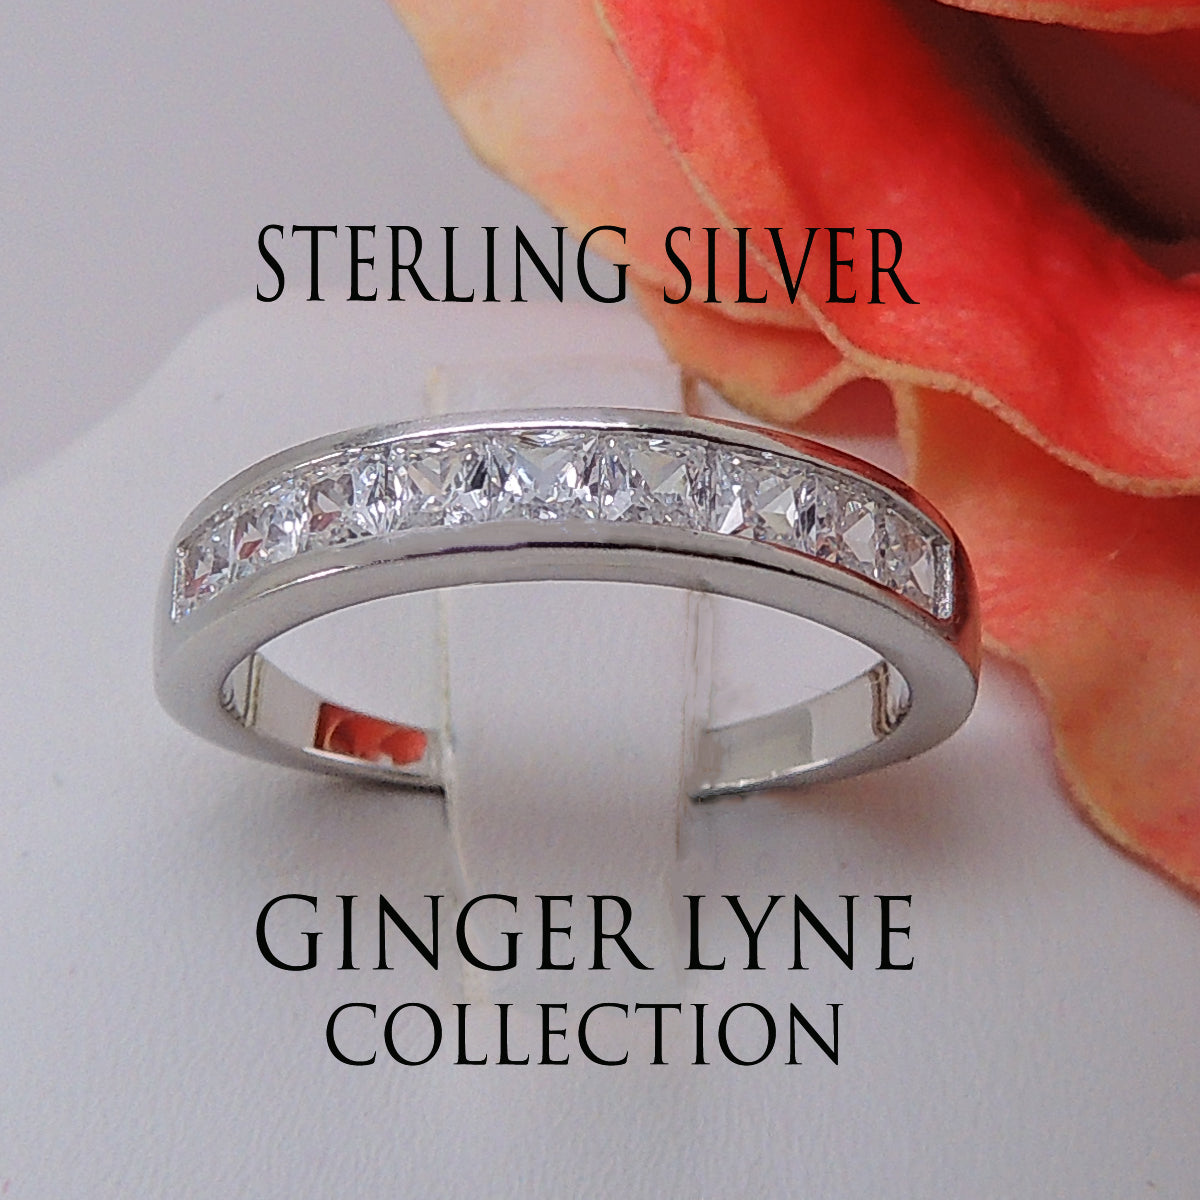 Georgia Anniversary Band 925 Sterling Silver Ring Princess Cut- Ginger Lyne Collection